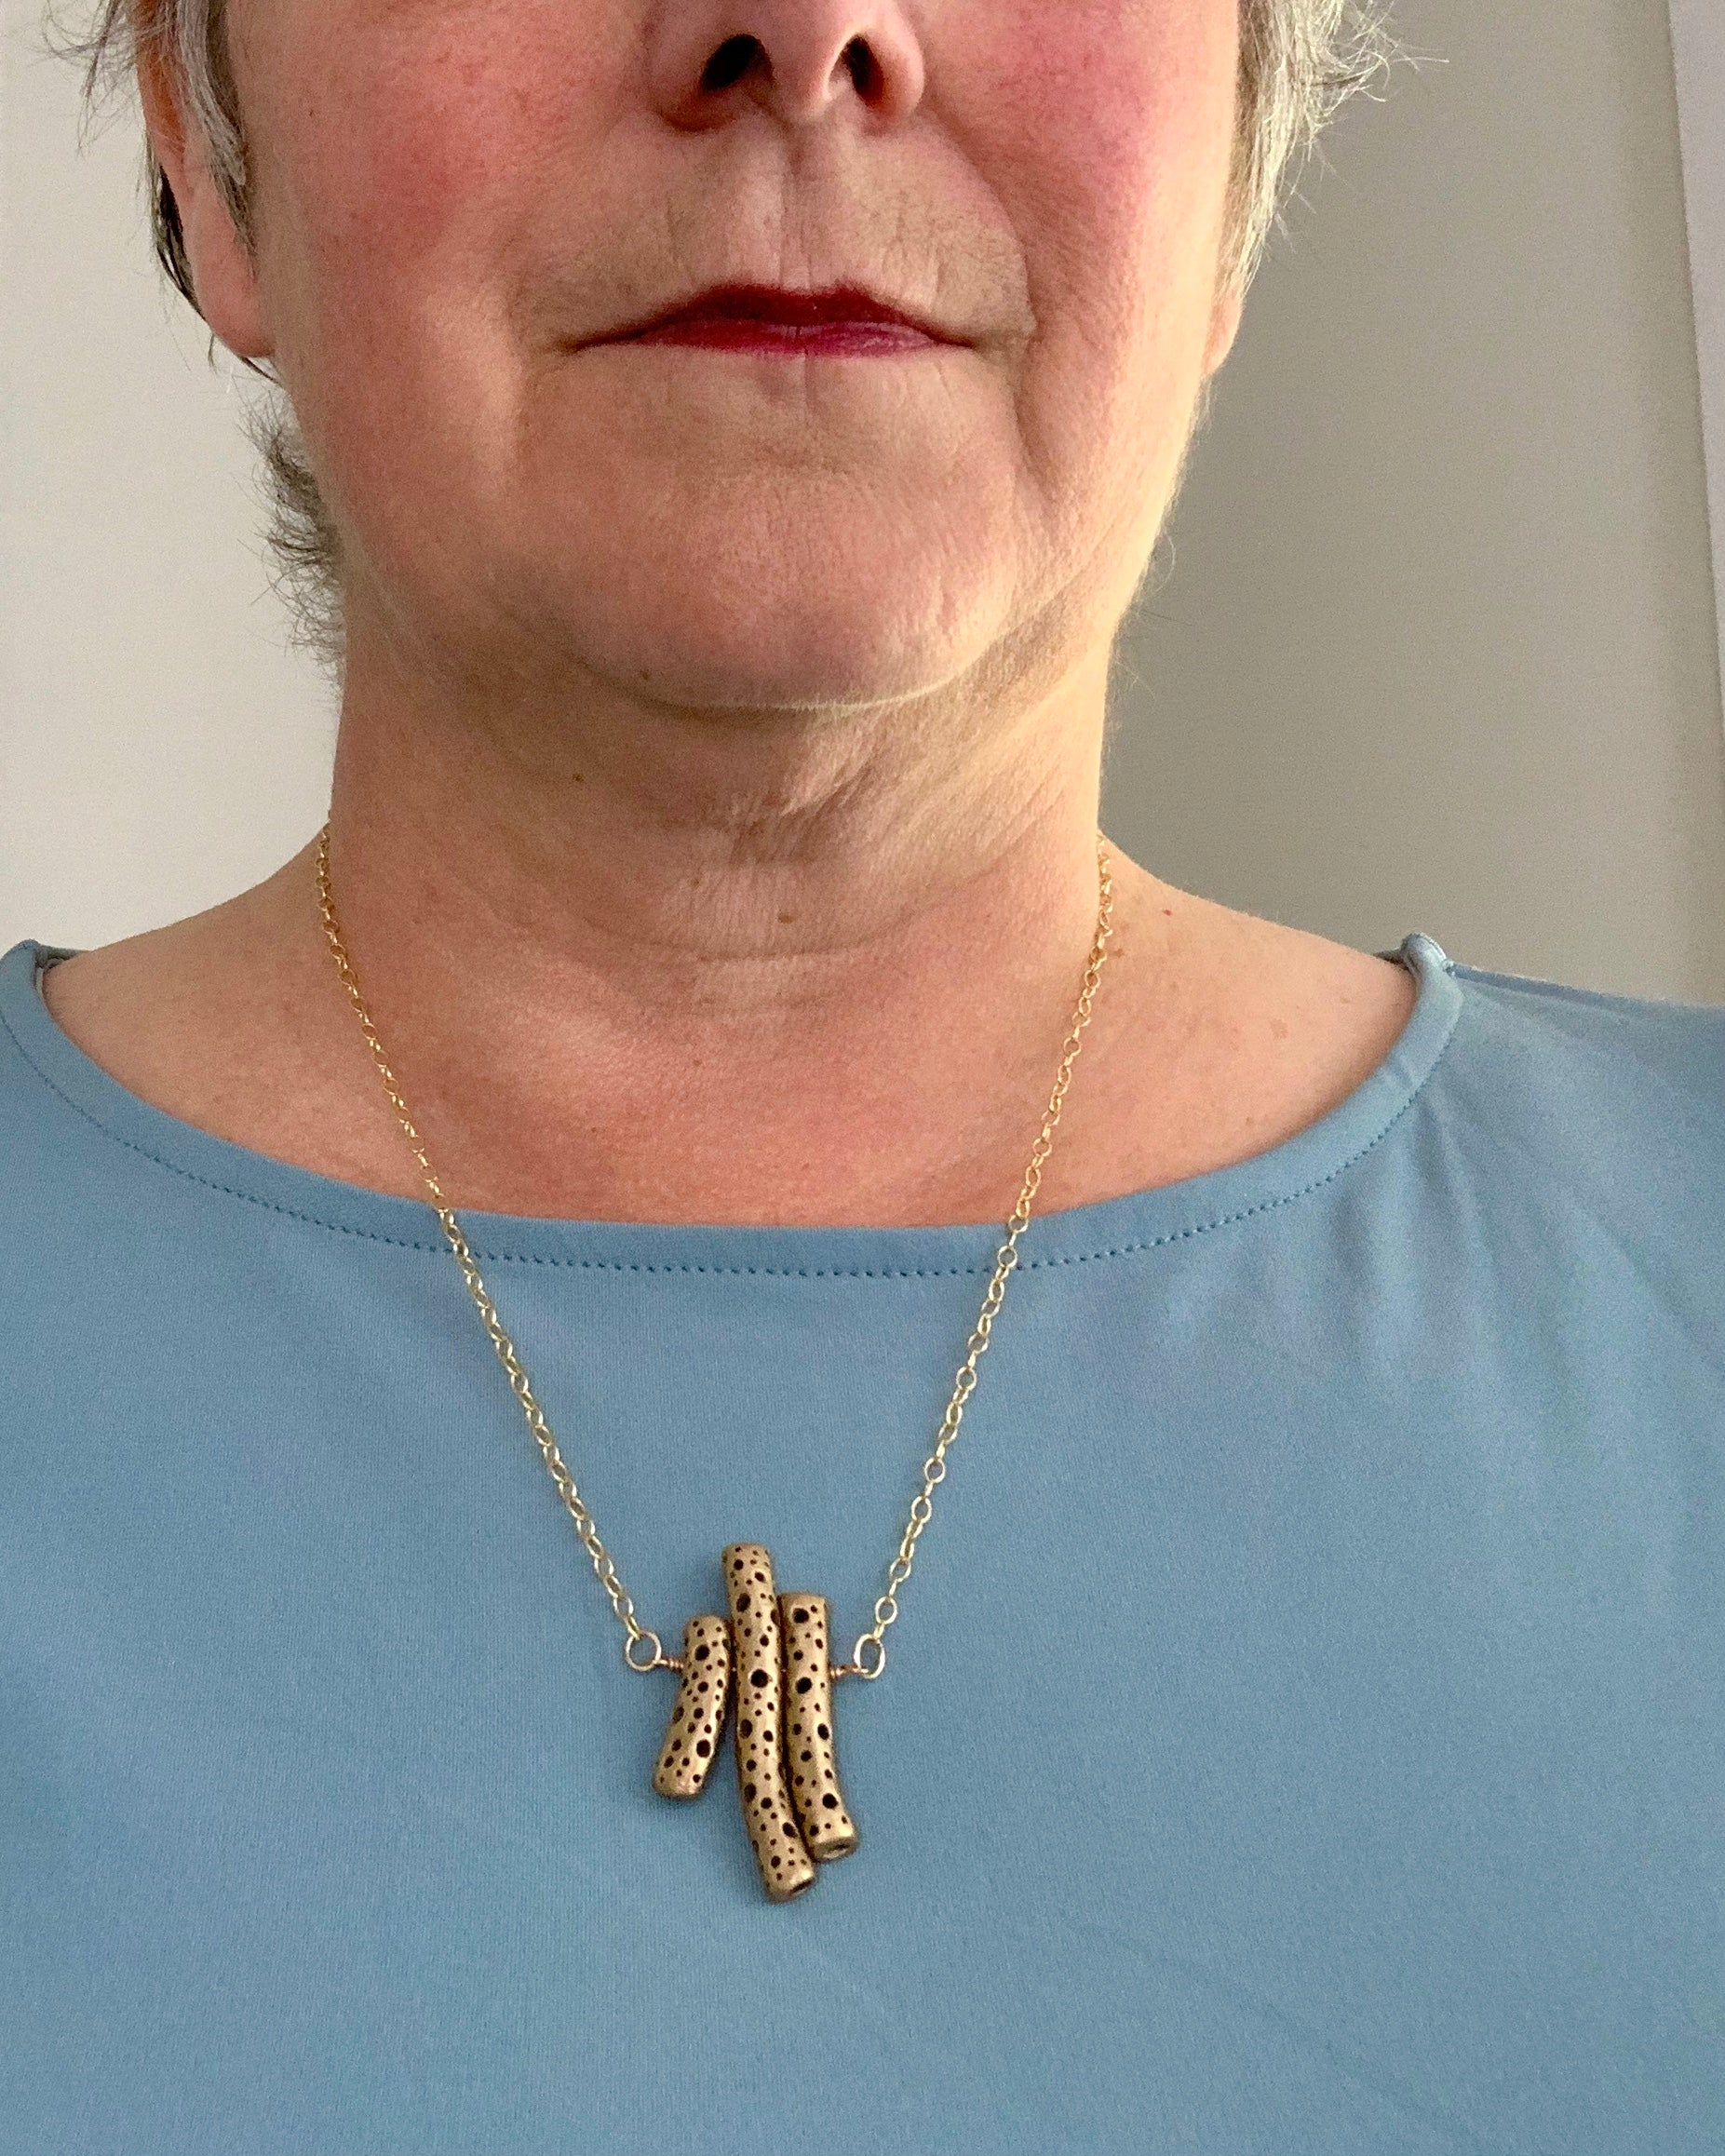 How to style an art {jewelry} necklace